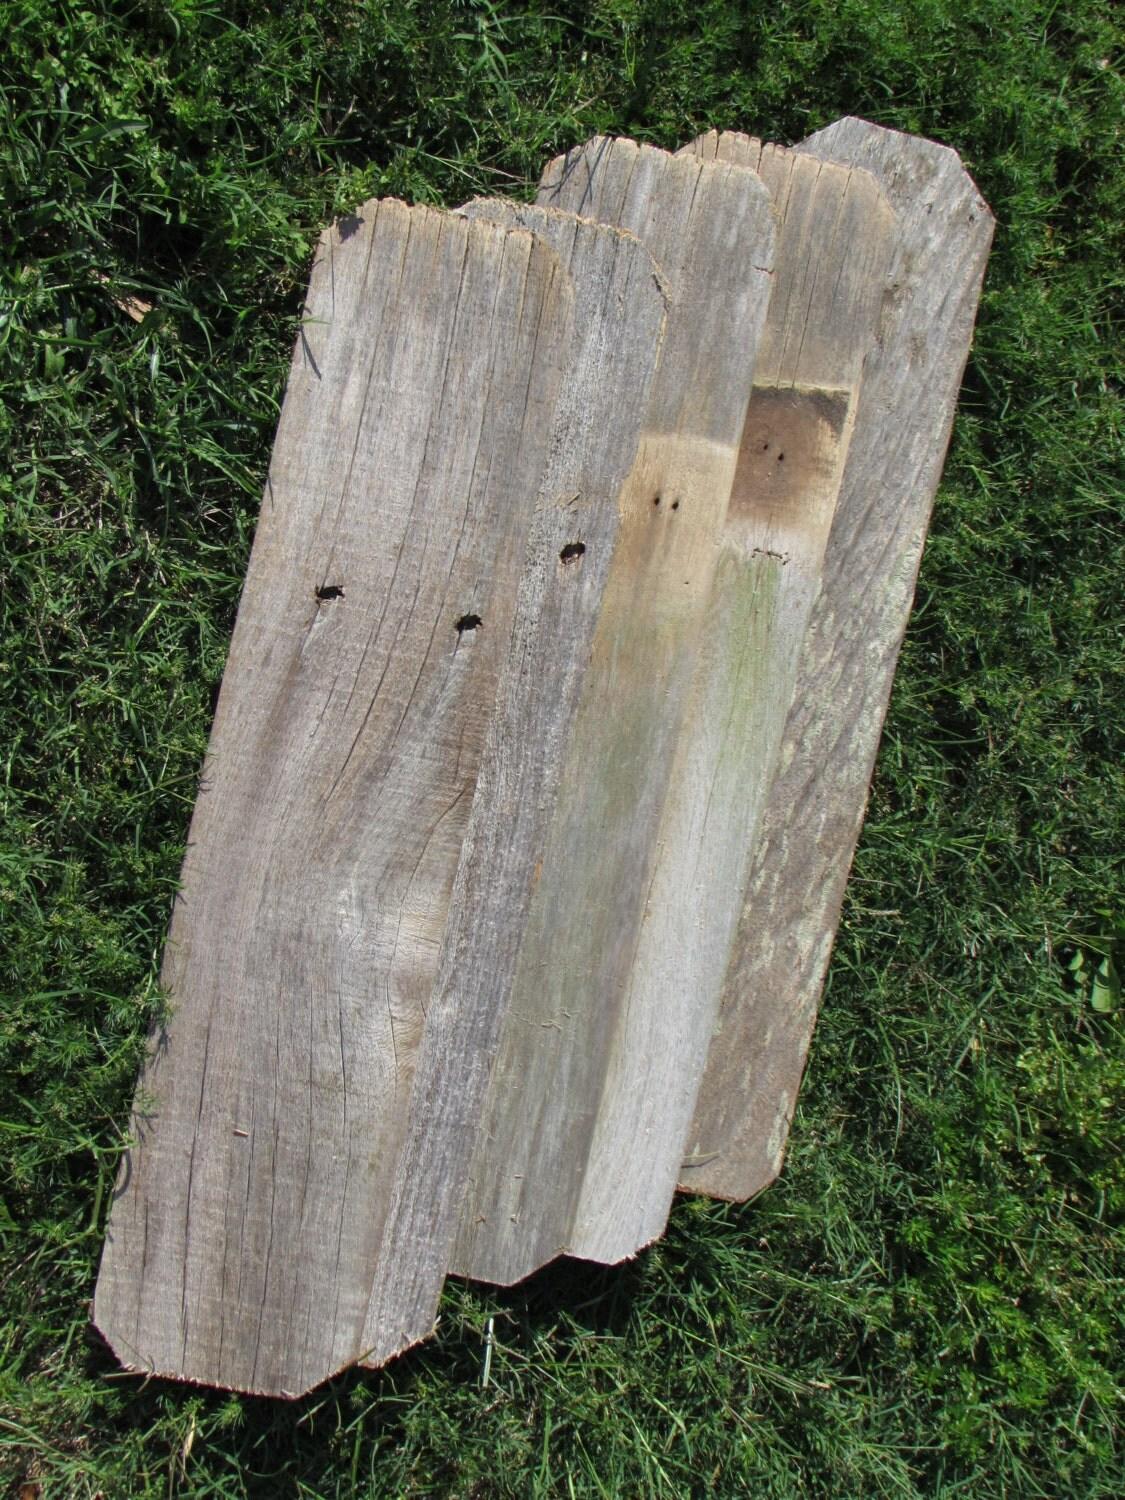 Reclaimed planks old fence wood boards with dog ears at both